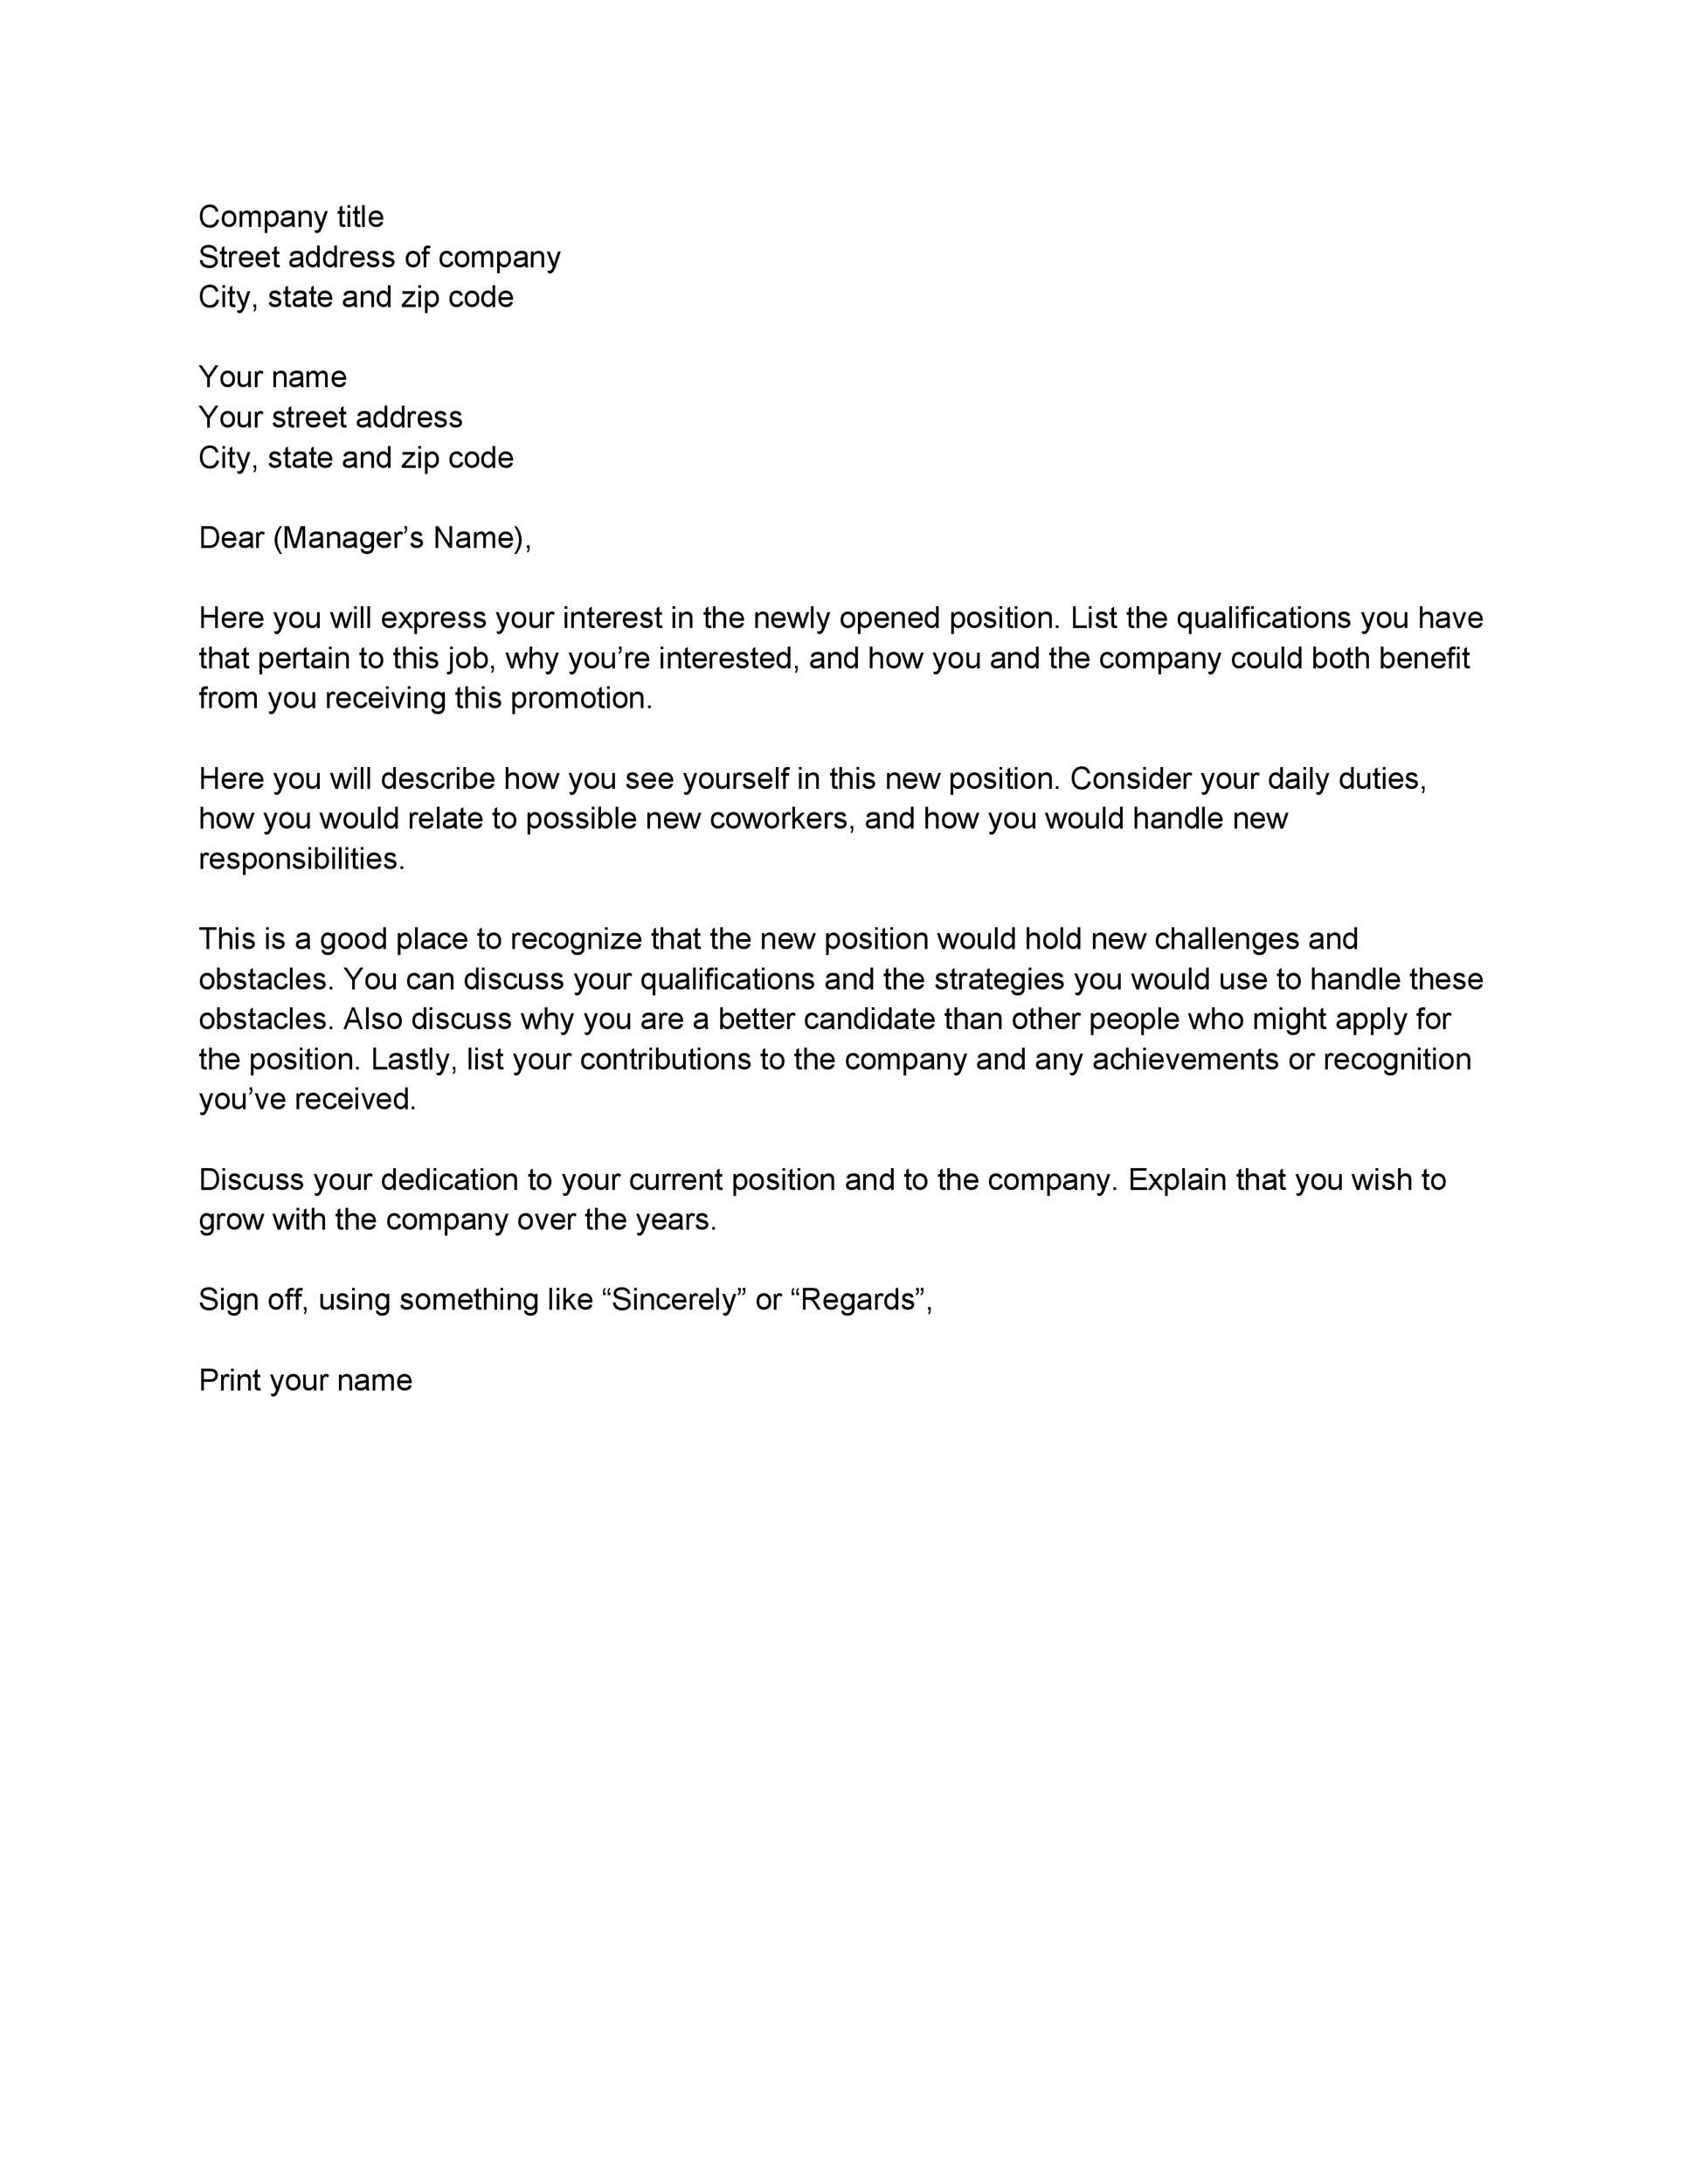 Letter of interest template for a job altavistaventures